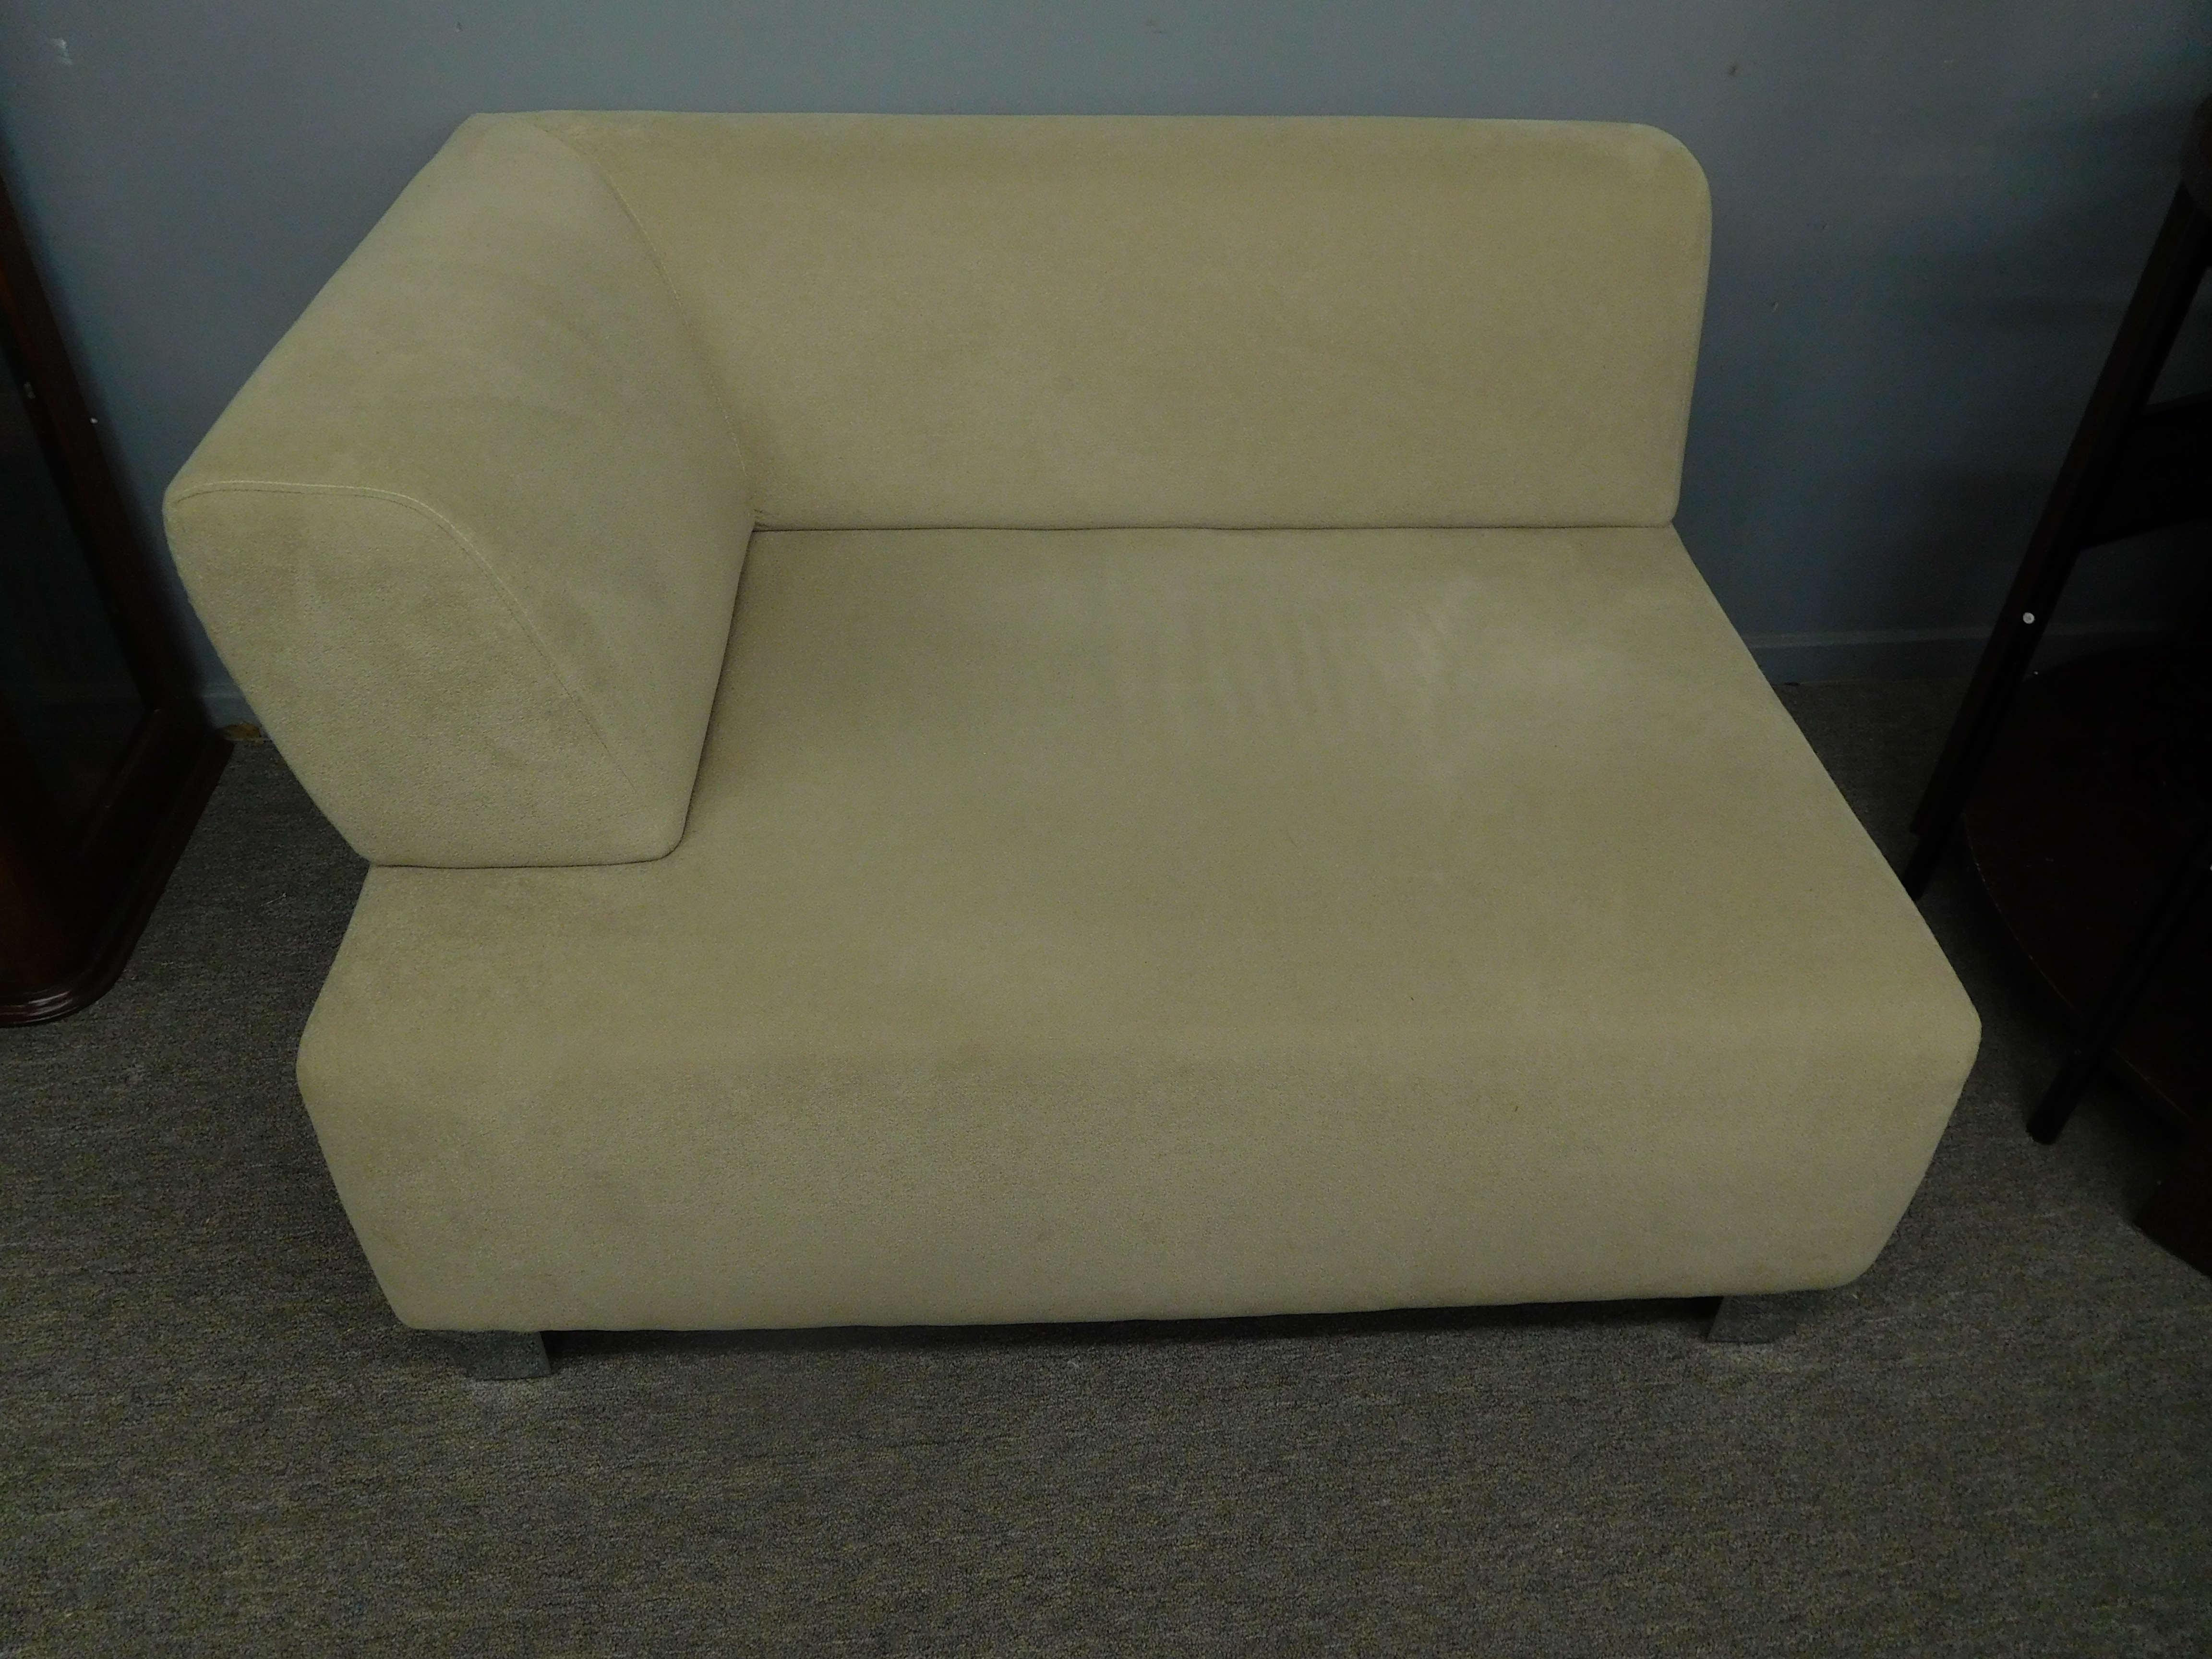 Modern Neutral Tone Square Chaise Lounger w/ Armrest